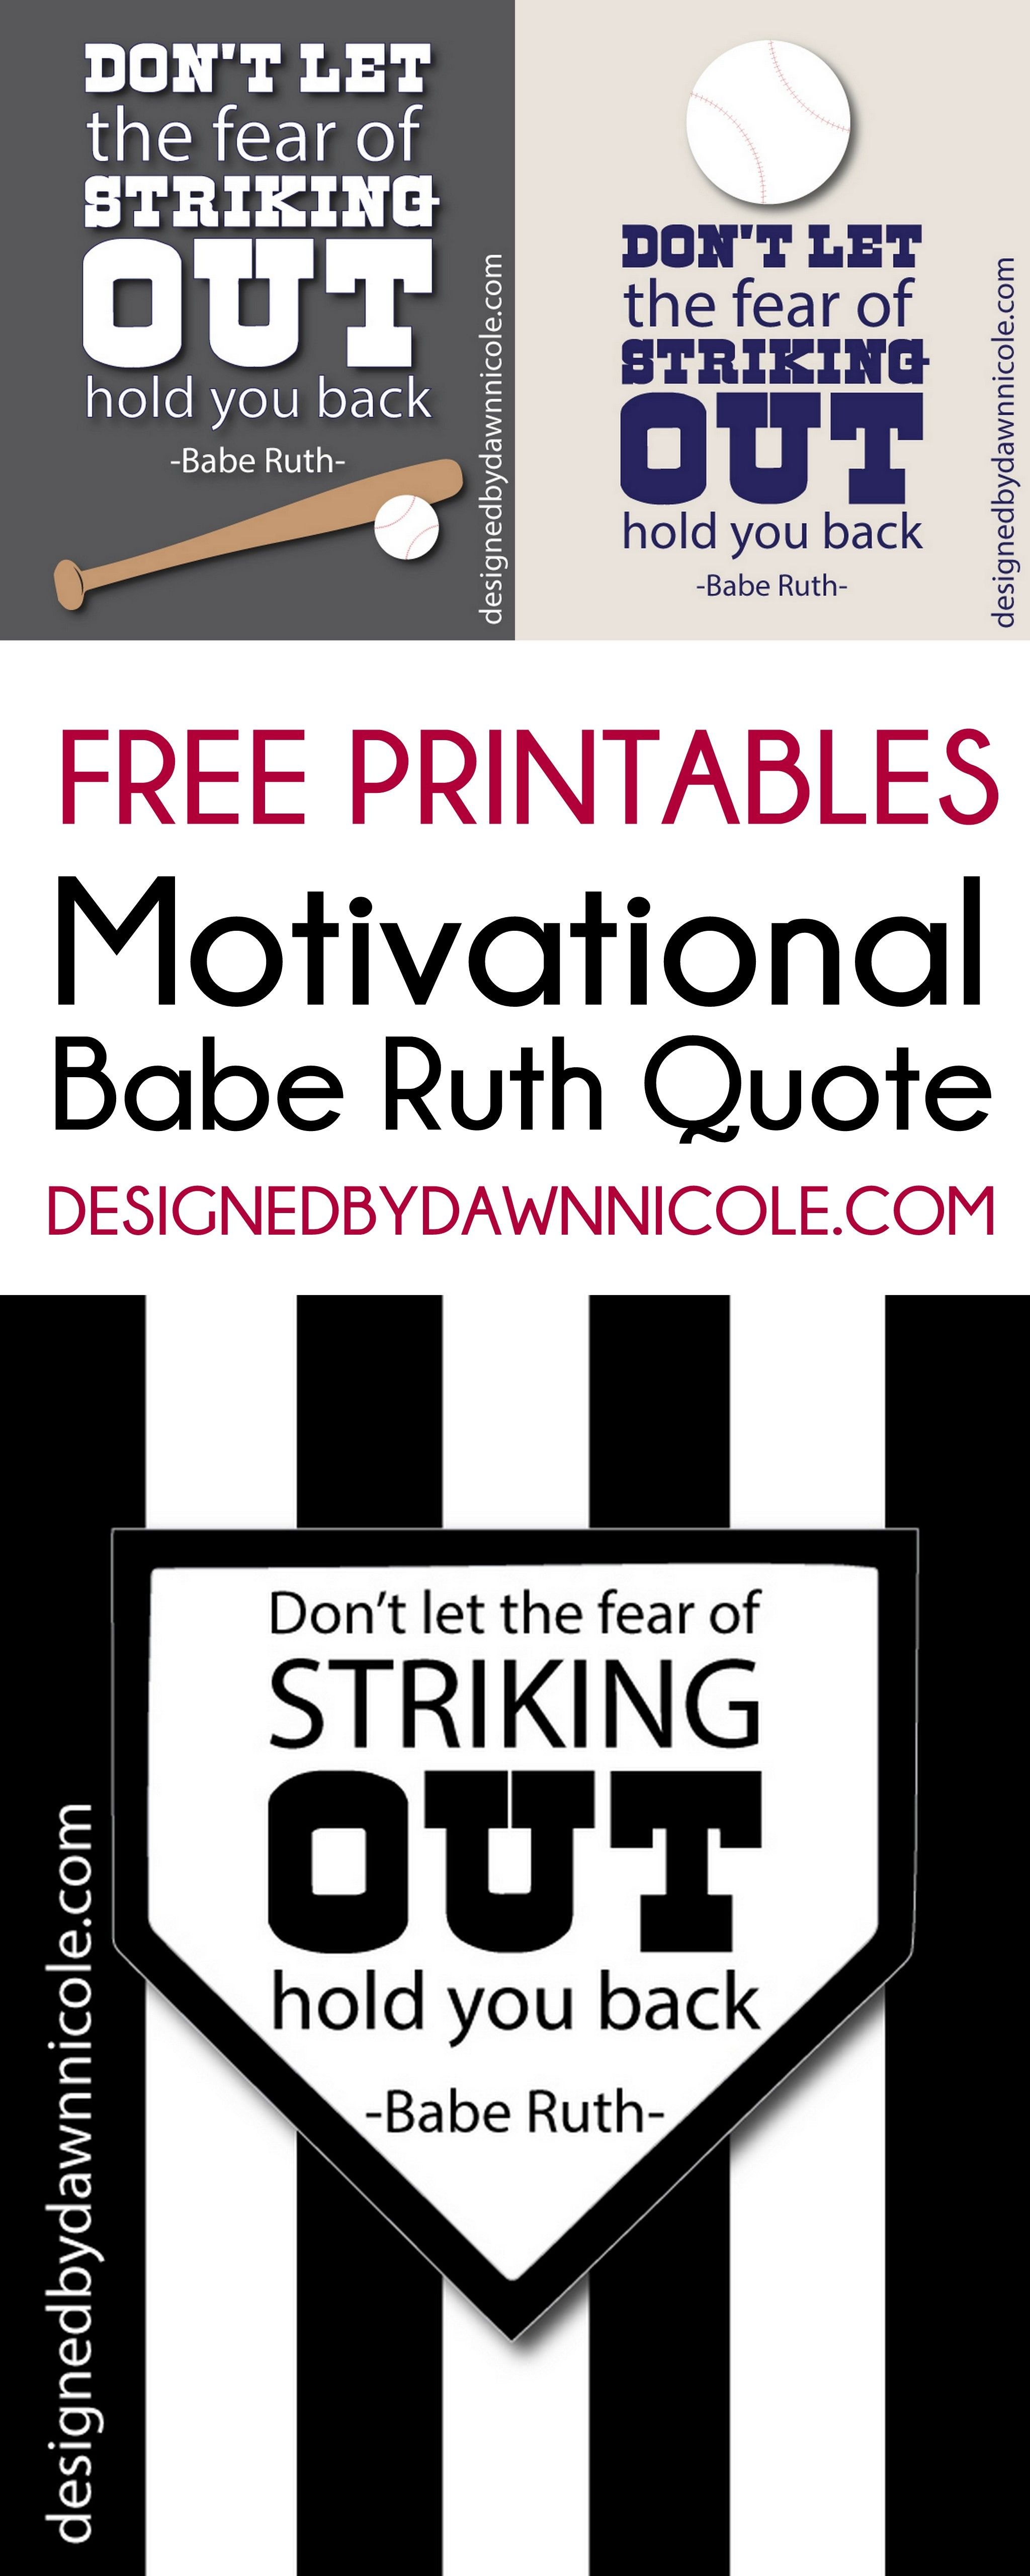 Free Printable: Babe Ruth Quote | Diy Home Decor Ideas | Pinterest - Free Printable Softball Pictures